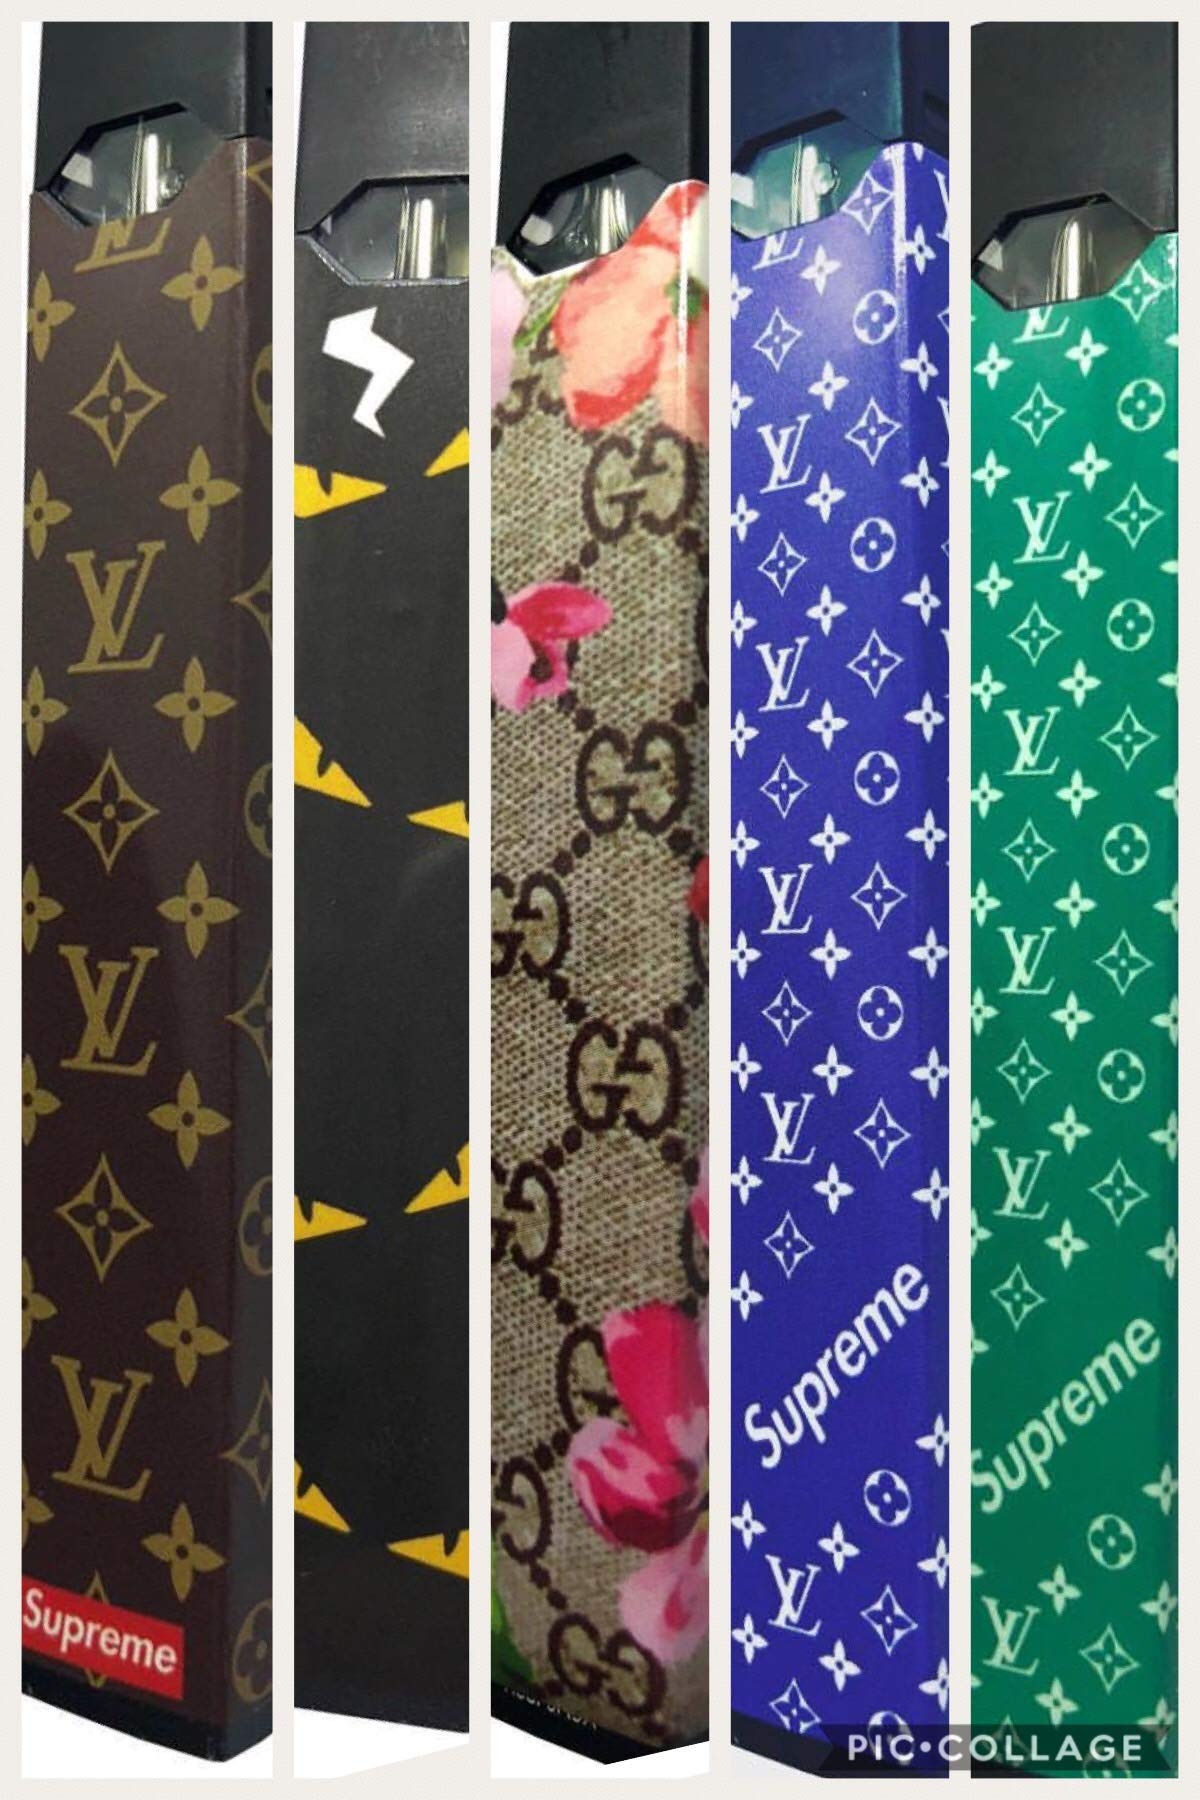 WRAP THAT (5 JUULWRAP Pack) (5 Different juul Skins Included) LV Brown - LV  Blue - LV Teal - Gucci Floral - Fendi